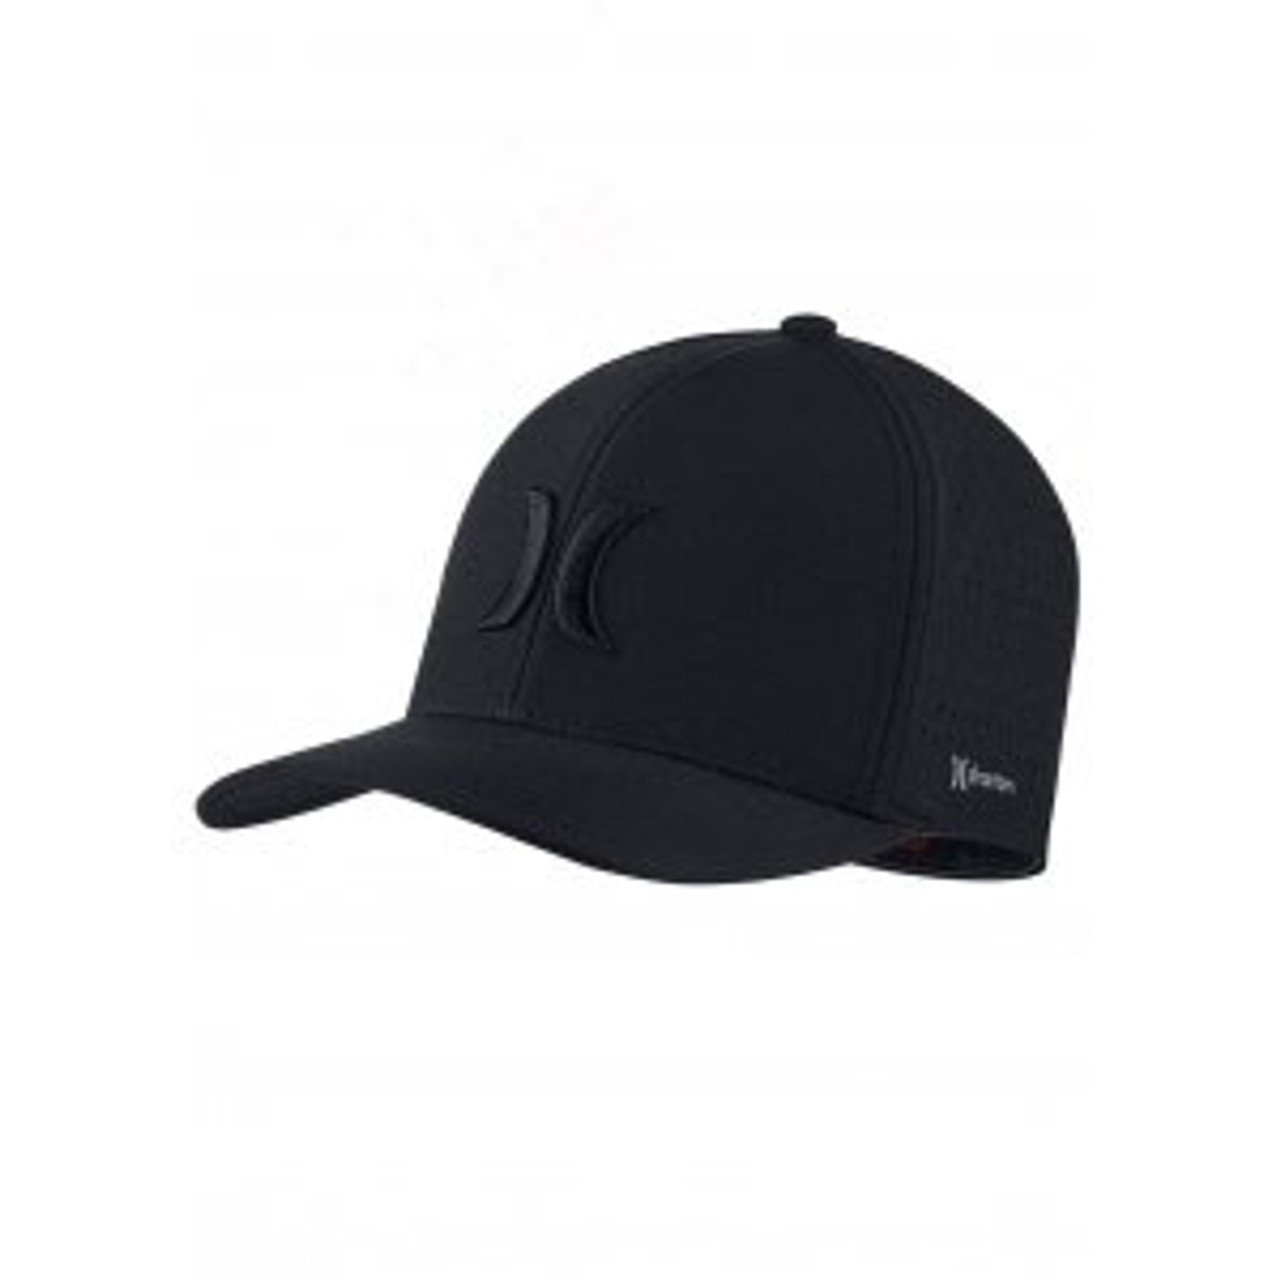 34e8eec6 Hurley Hat - Phantom 4.0 - Black/Black - Surf and Dirt